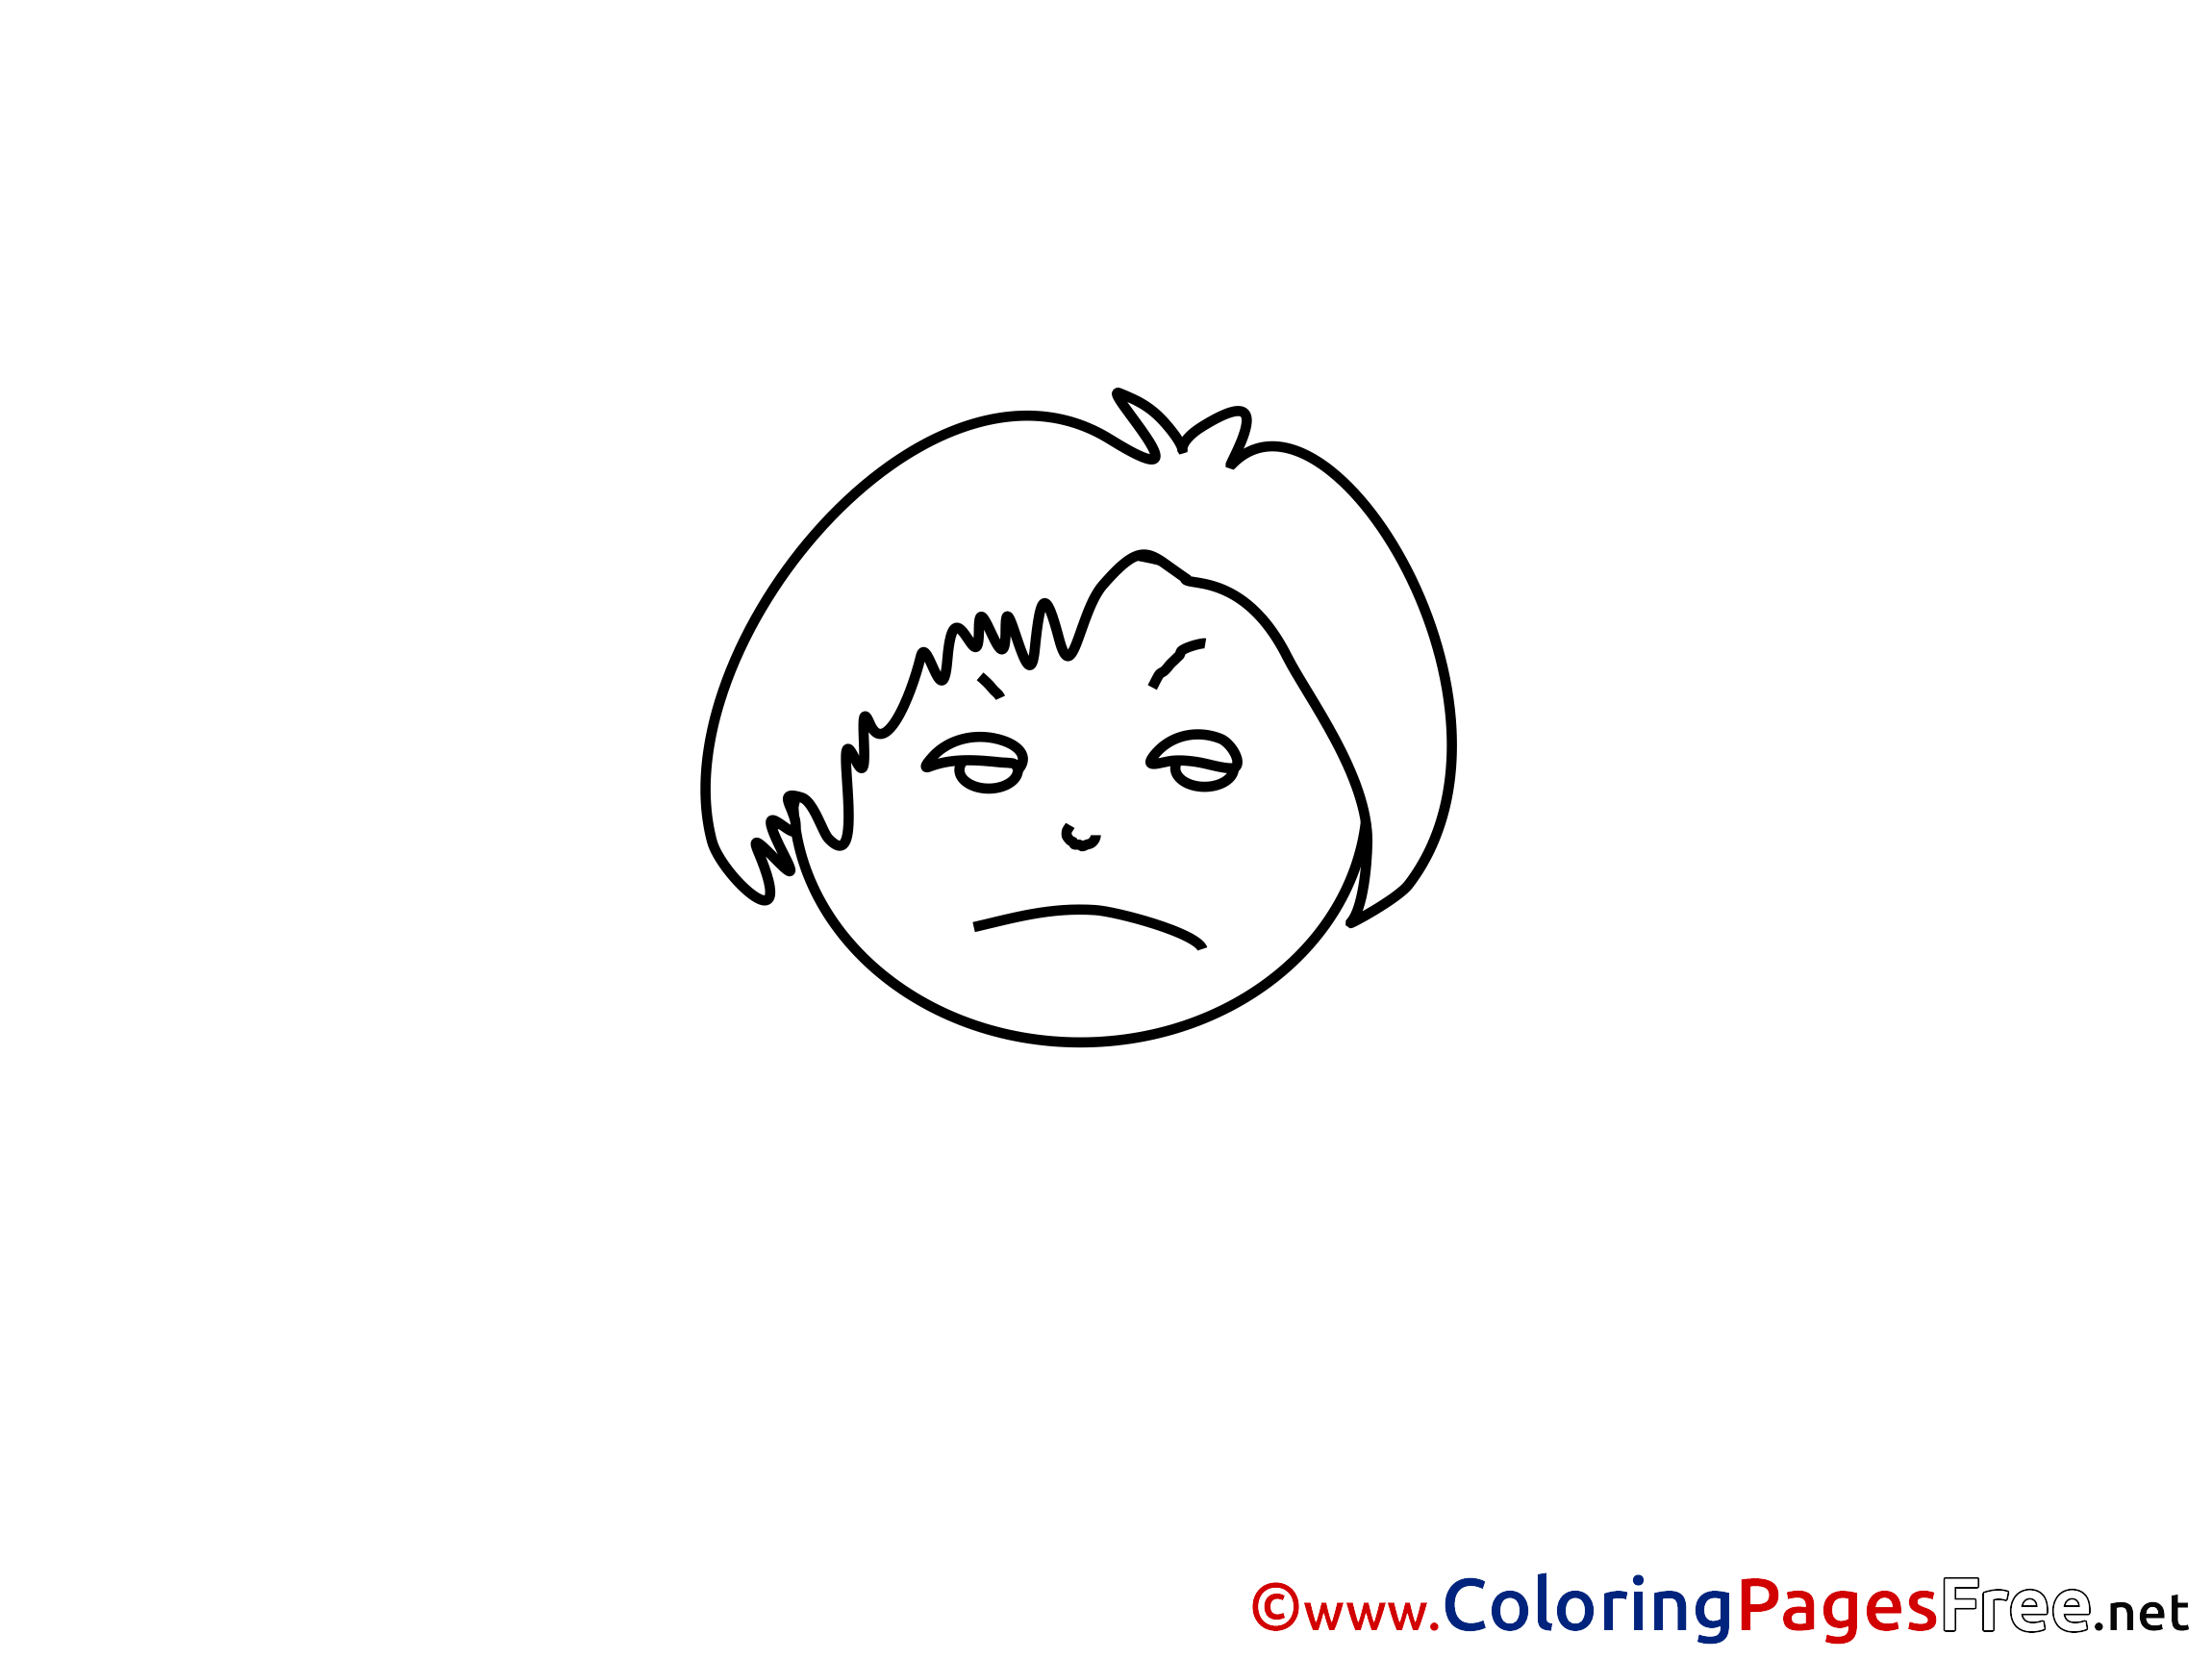 Sad Face for Children free Coloring Pages